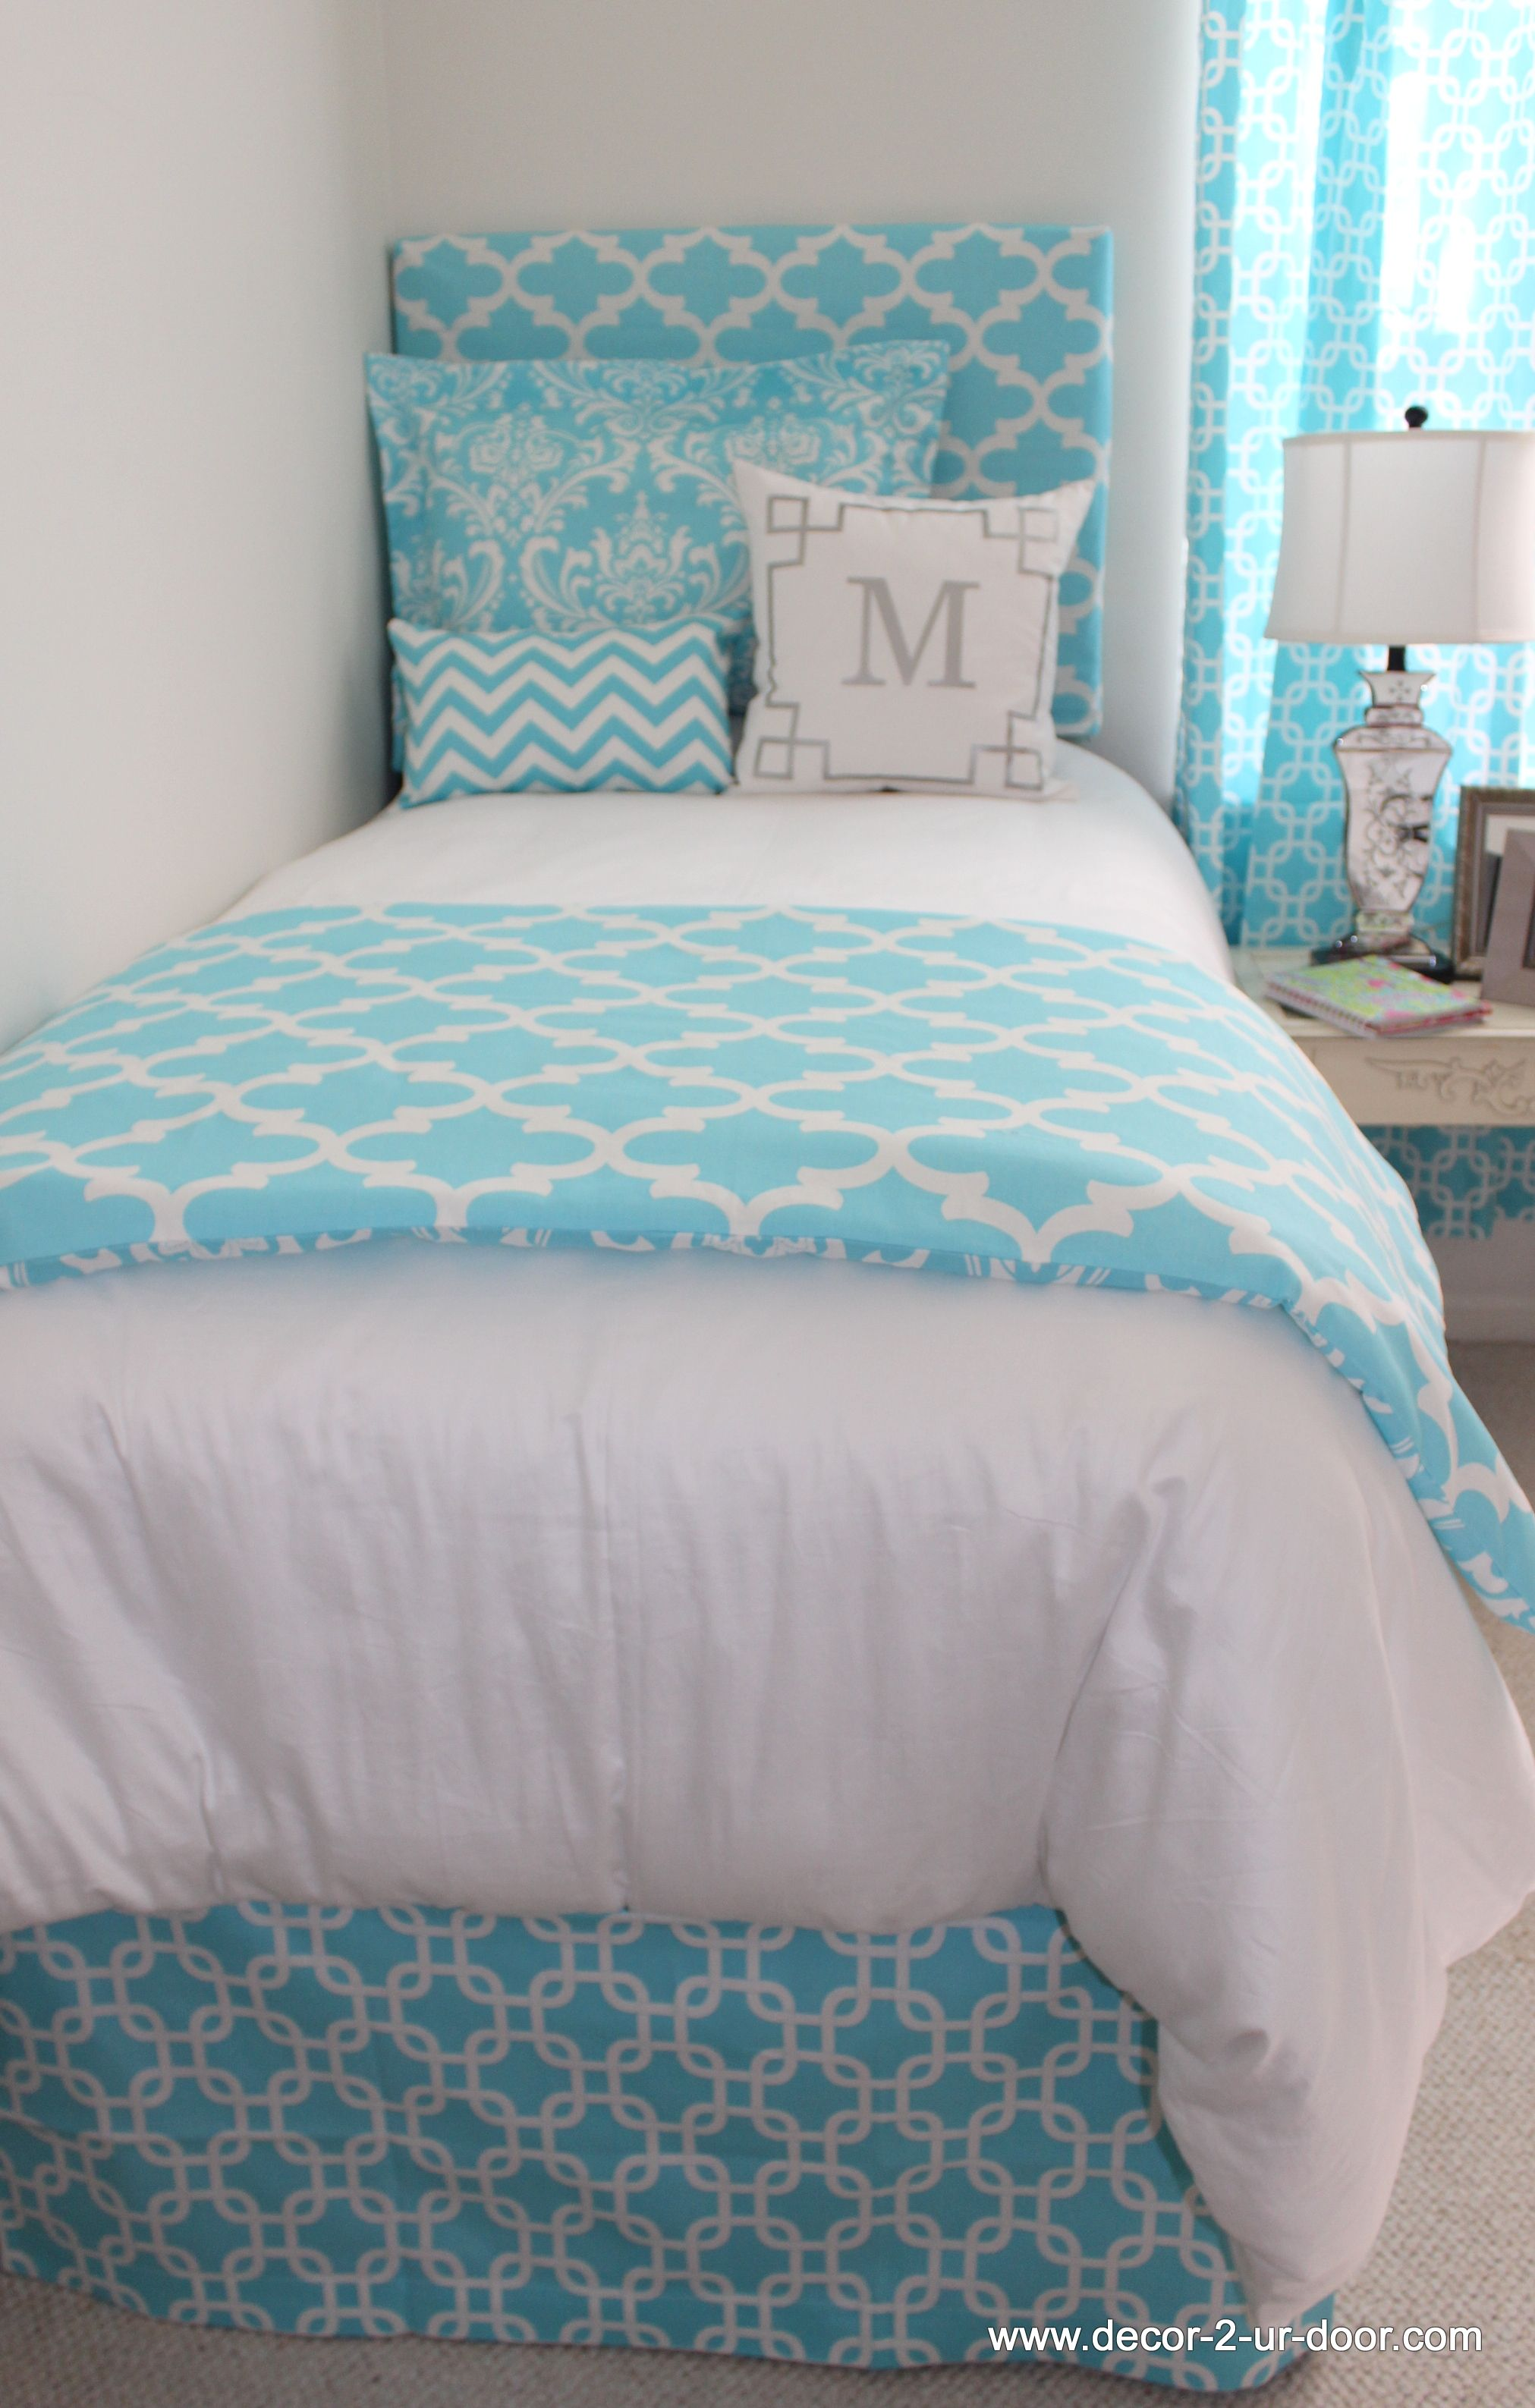 Blue bedroom sets for girls - Dorm Room Bedding Sets By Decor 2 Ur Door Design Your Own Or Select One Of Our Custom Designer Dorm Room Teen Girl Apartment And Home Bed In A Bag Sets